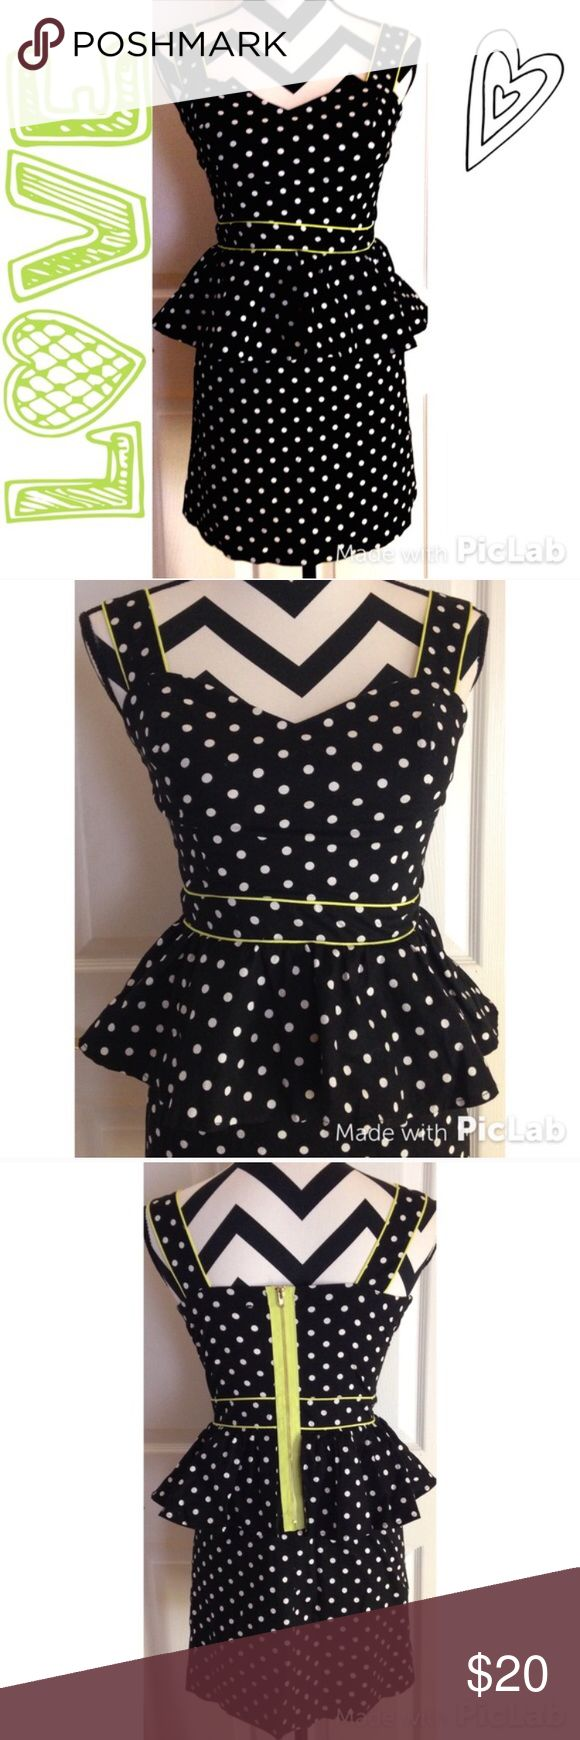 Polls dot zip up dress Super classy, cute and comfortable neocon green and polka dot dress!! Worn a few time but still in excellent condition!! I love this dress but can no longer fit into it!! Dresses Midi